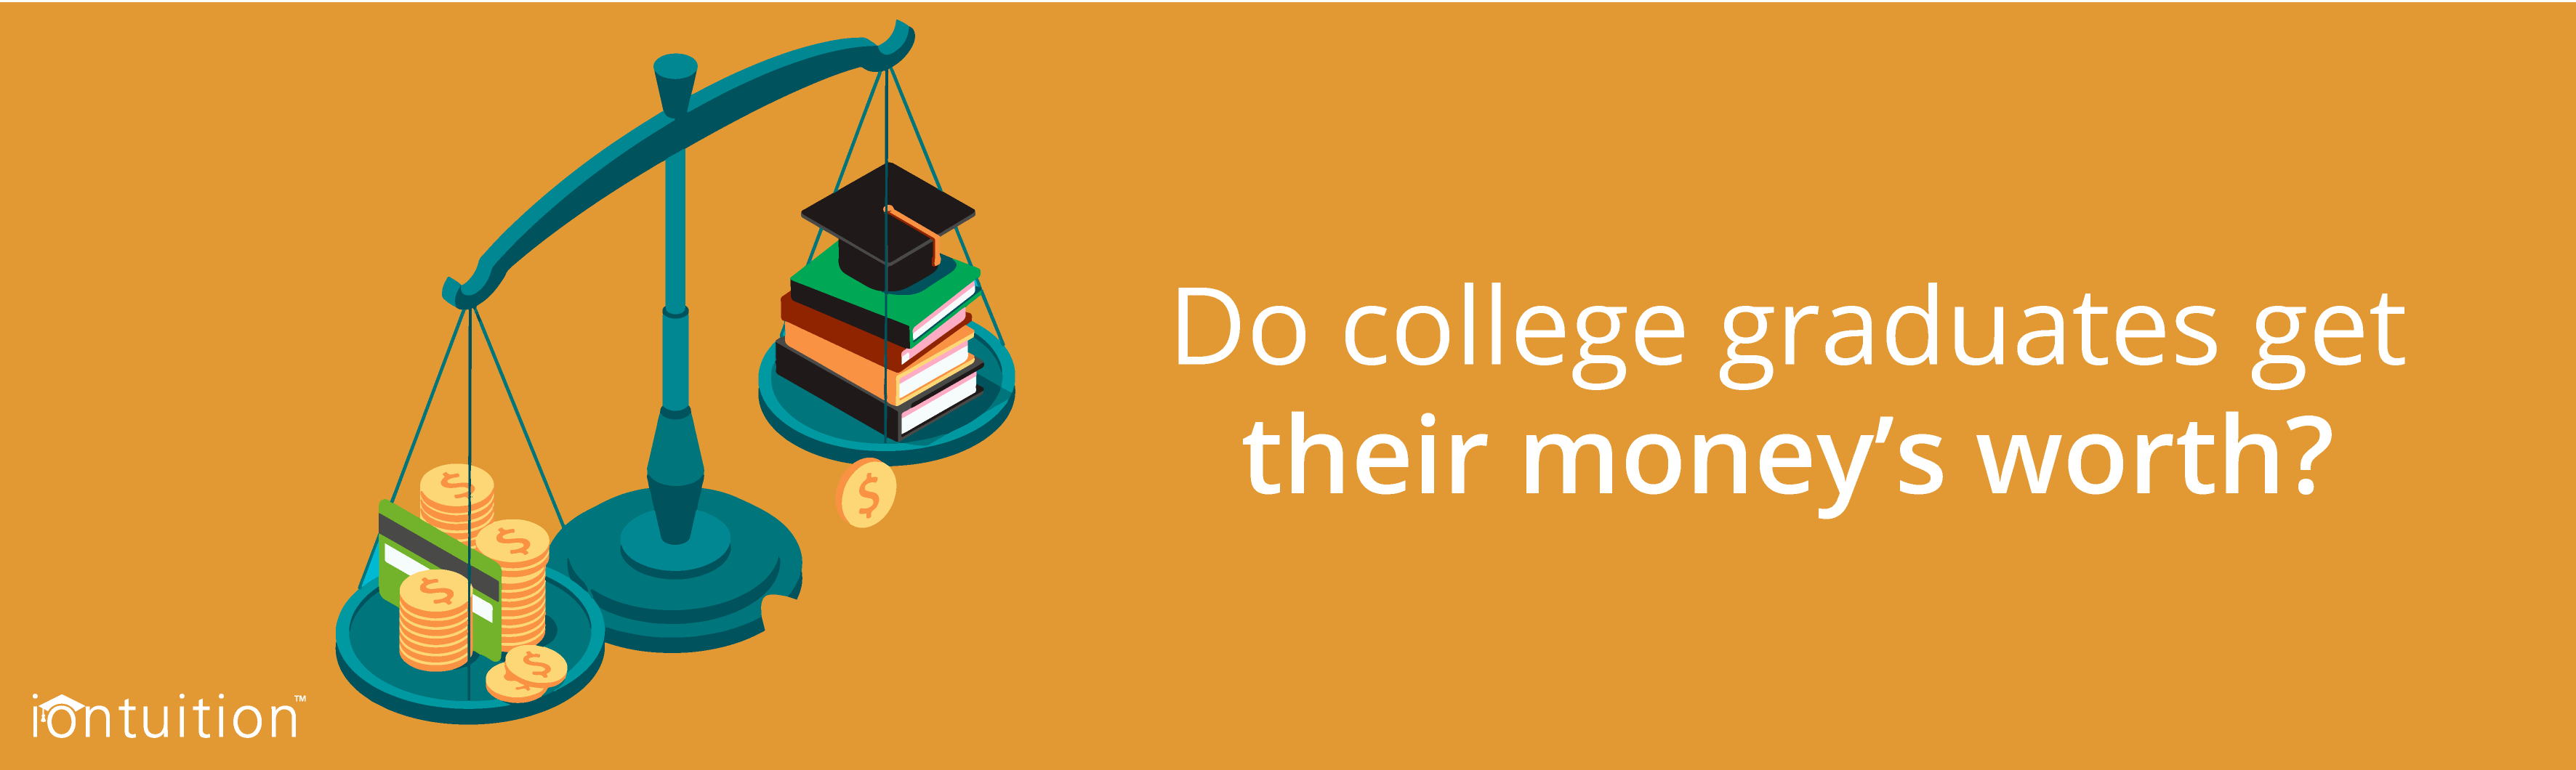 Do Degree Holders from Prestigious Colleges Have Higher Incomes?